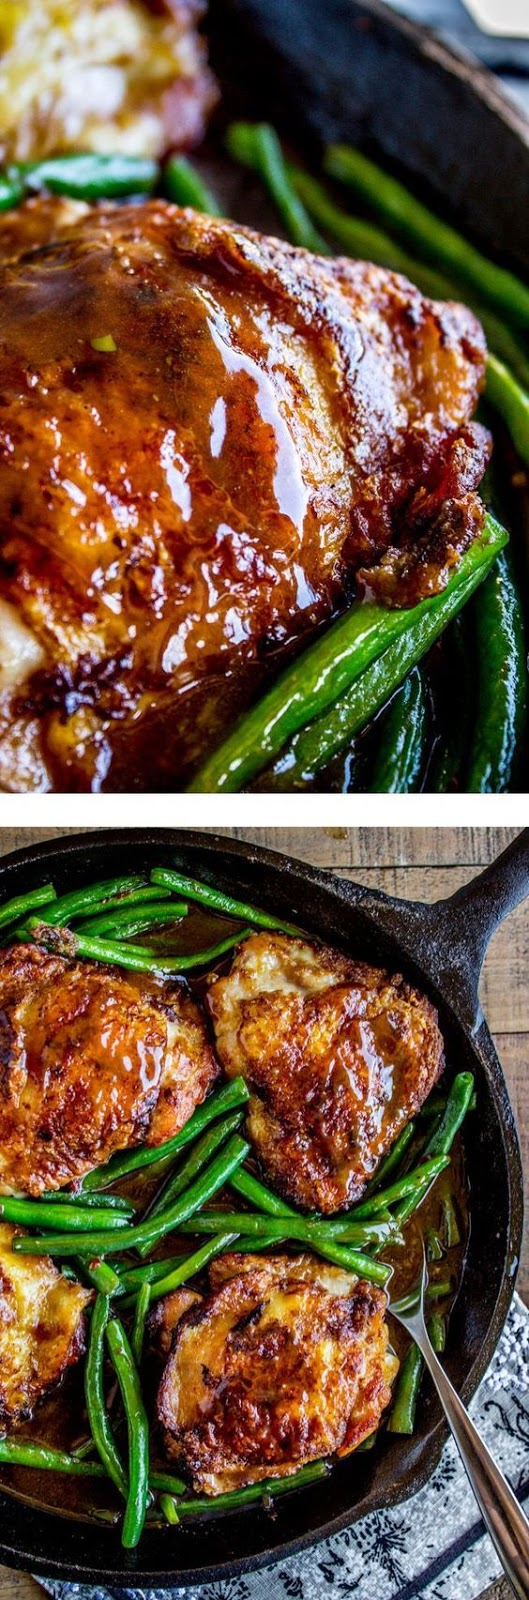 Asian Seared Chicken with Stir Fried Green Beans